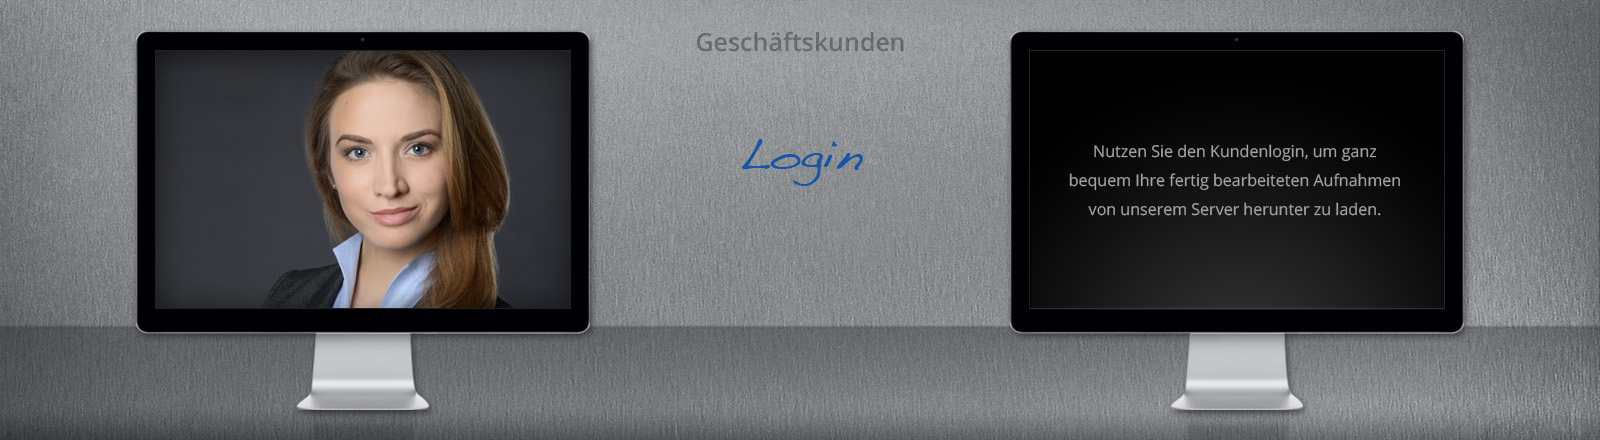 06_01_login_business.studio-schloen.de